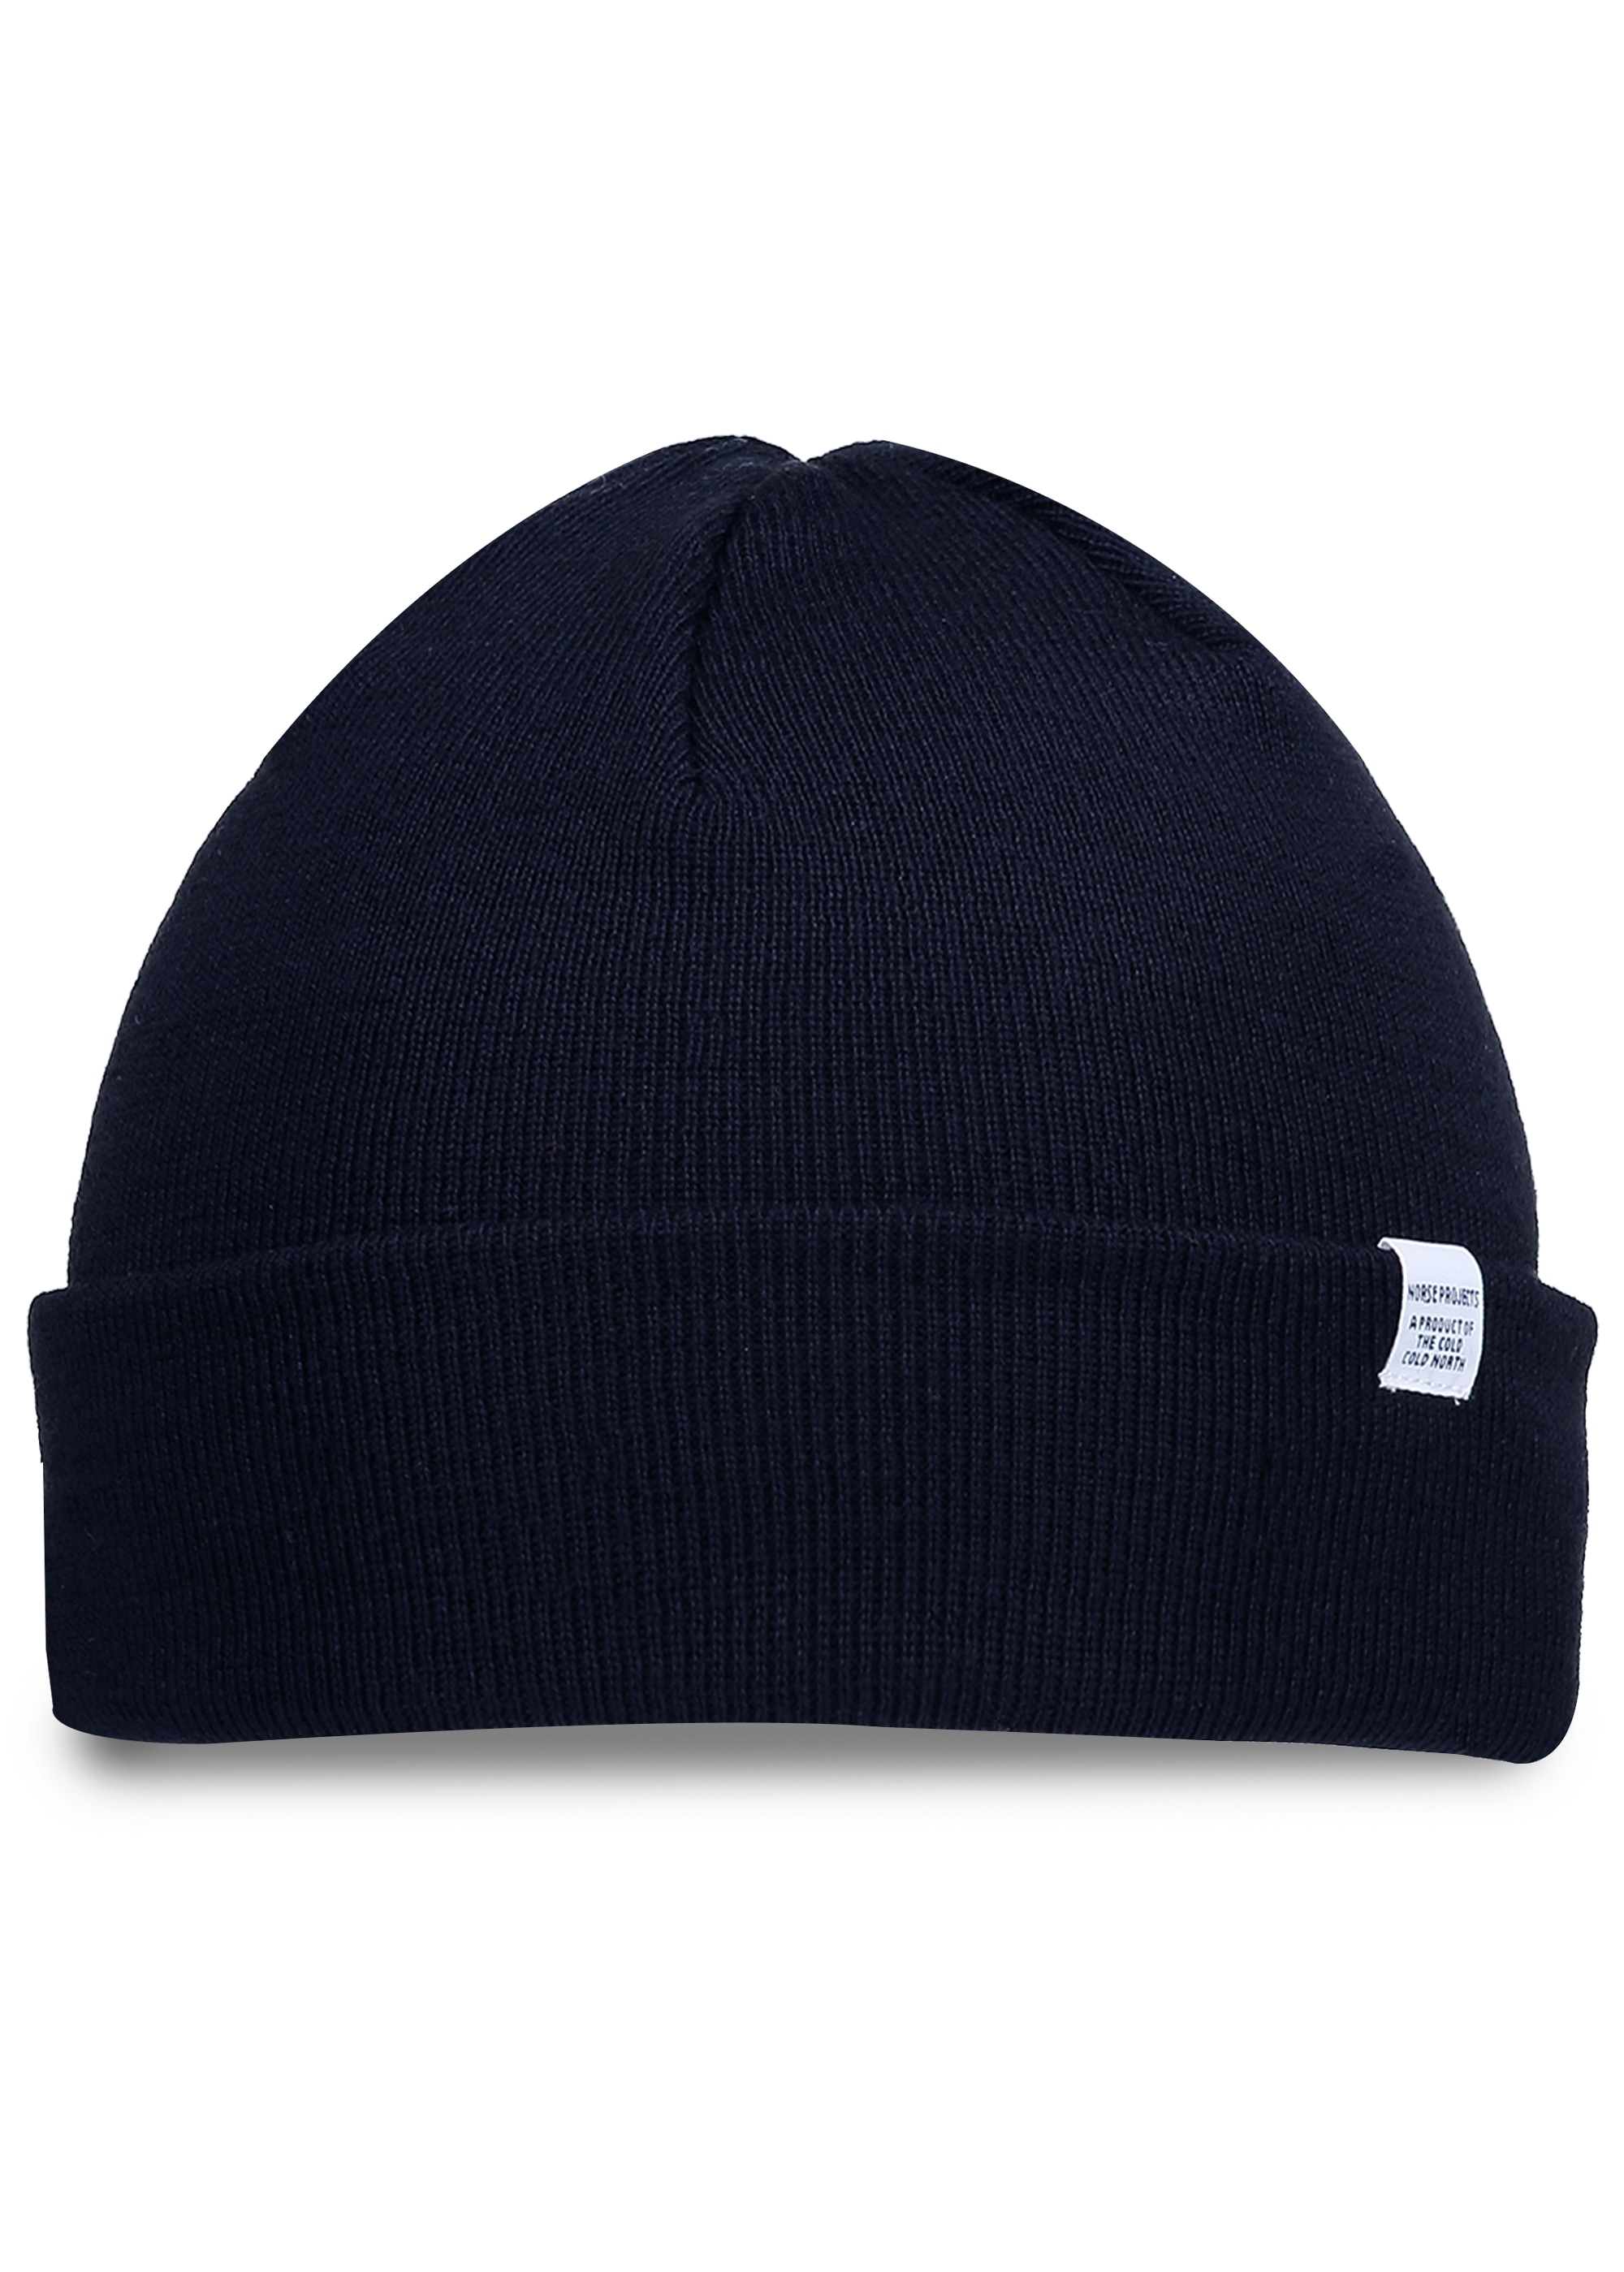 2d067b43dd4 Norse Projects Norse Top Beanie - Navy - Headwear from Triads UK